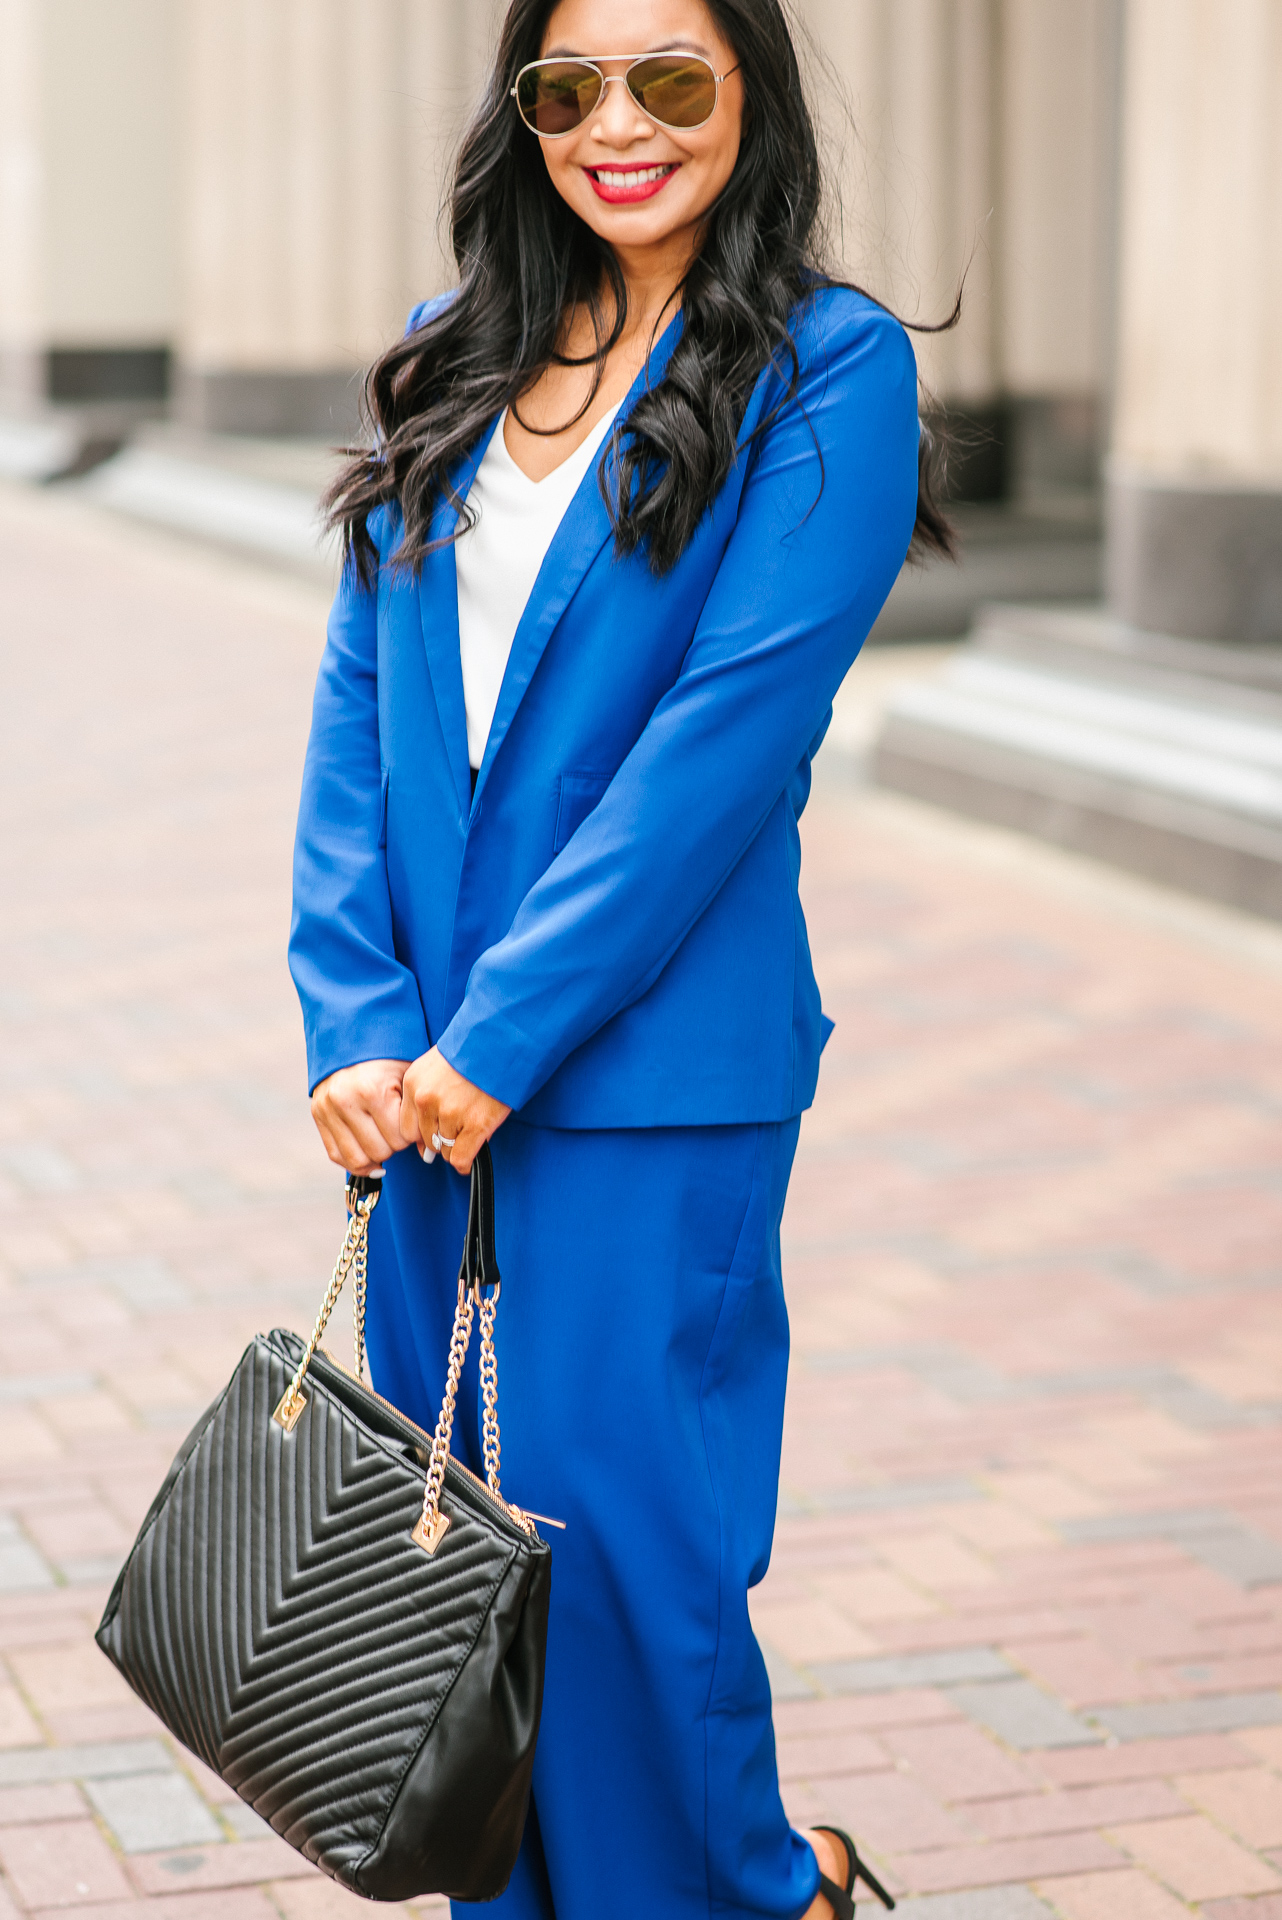 fashionable-outfits-for-the-office